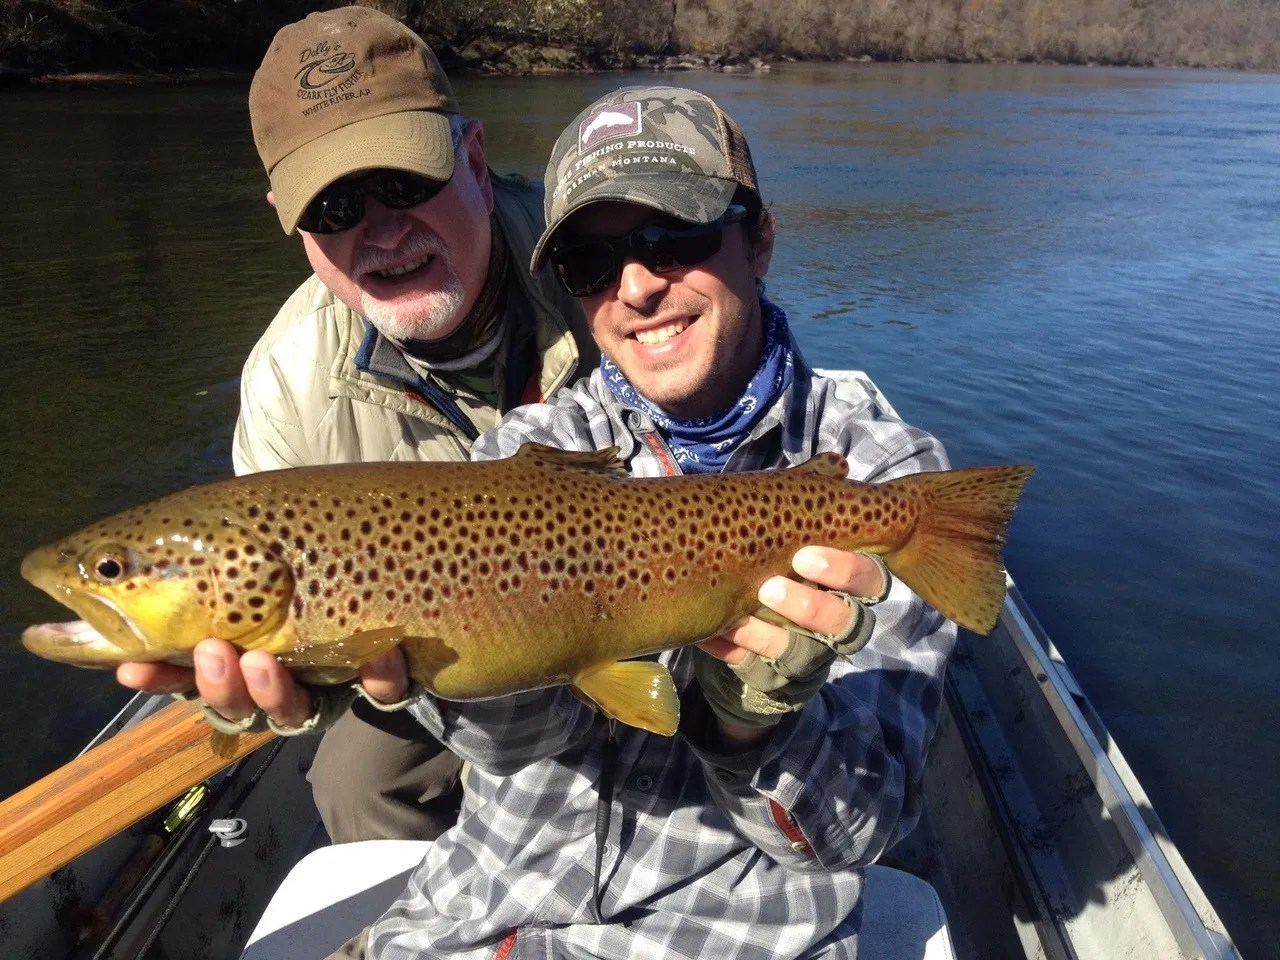 Dally s fly fishing report 11 13 15 the ozark fly for Ruby river fishing report